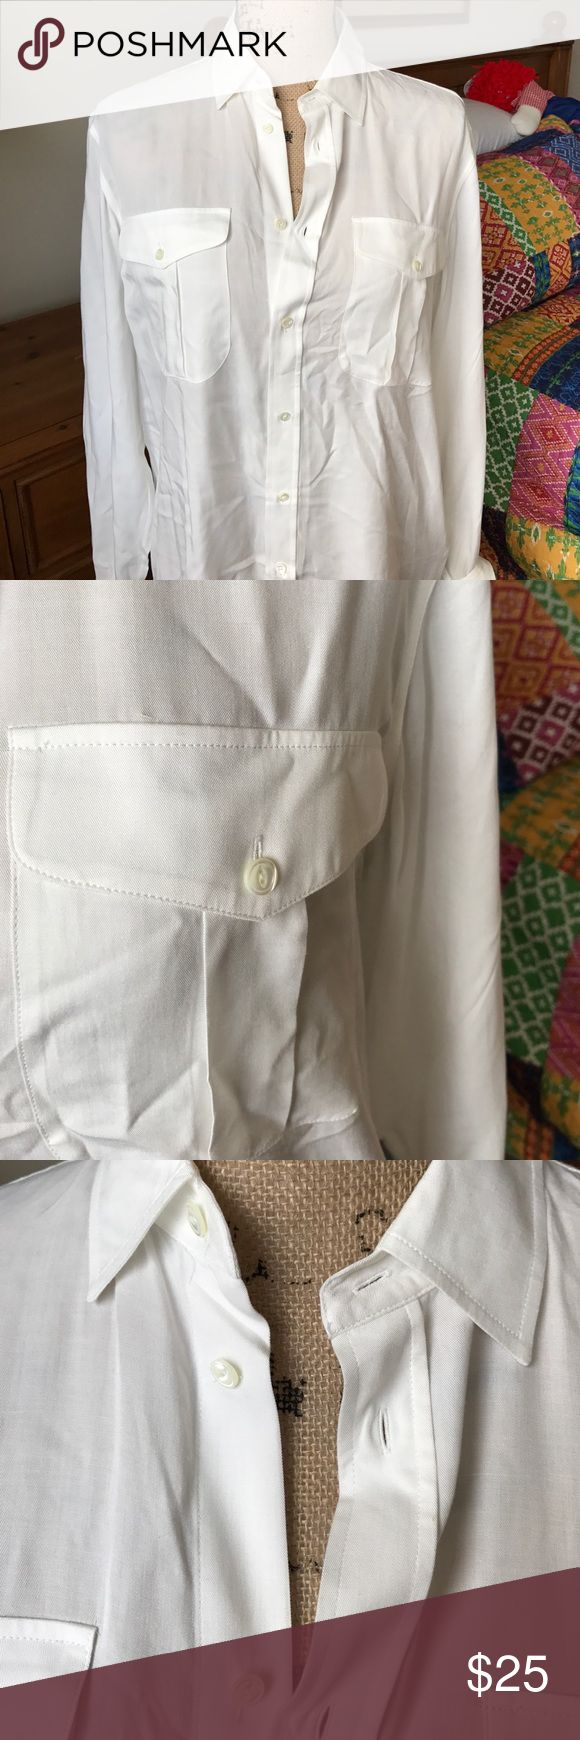 Ralph Lauren high low blouse Purchased at factory store. Longer in back. Ralph Lauren Tops Button Down Shirts